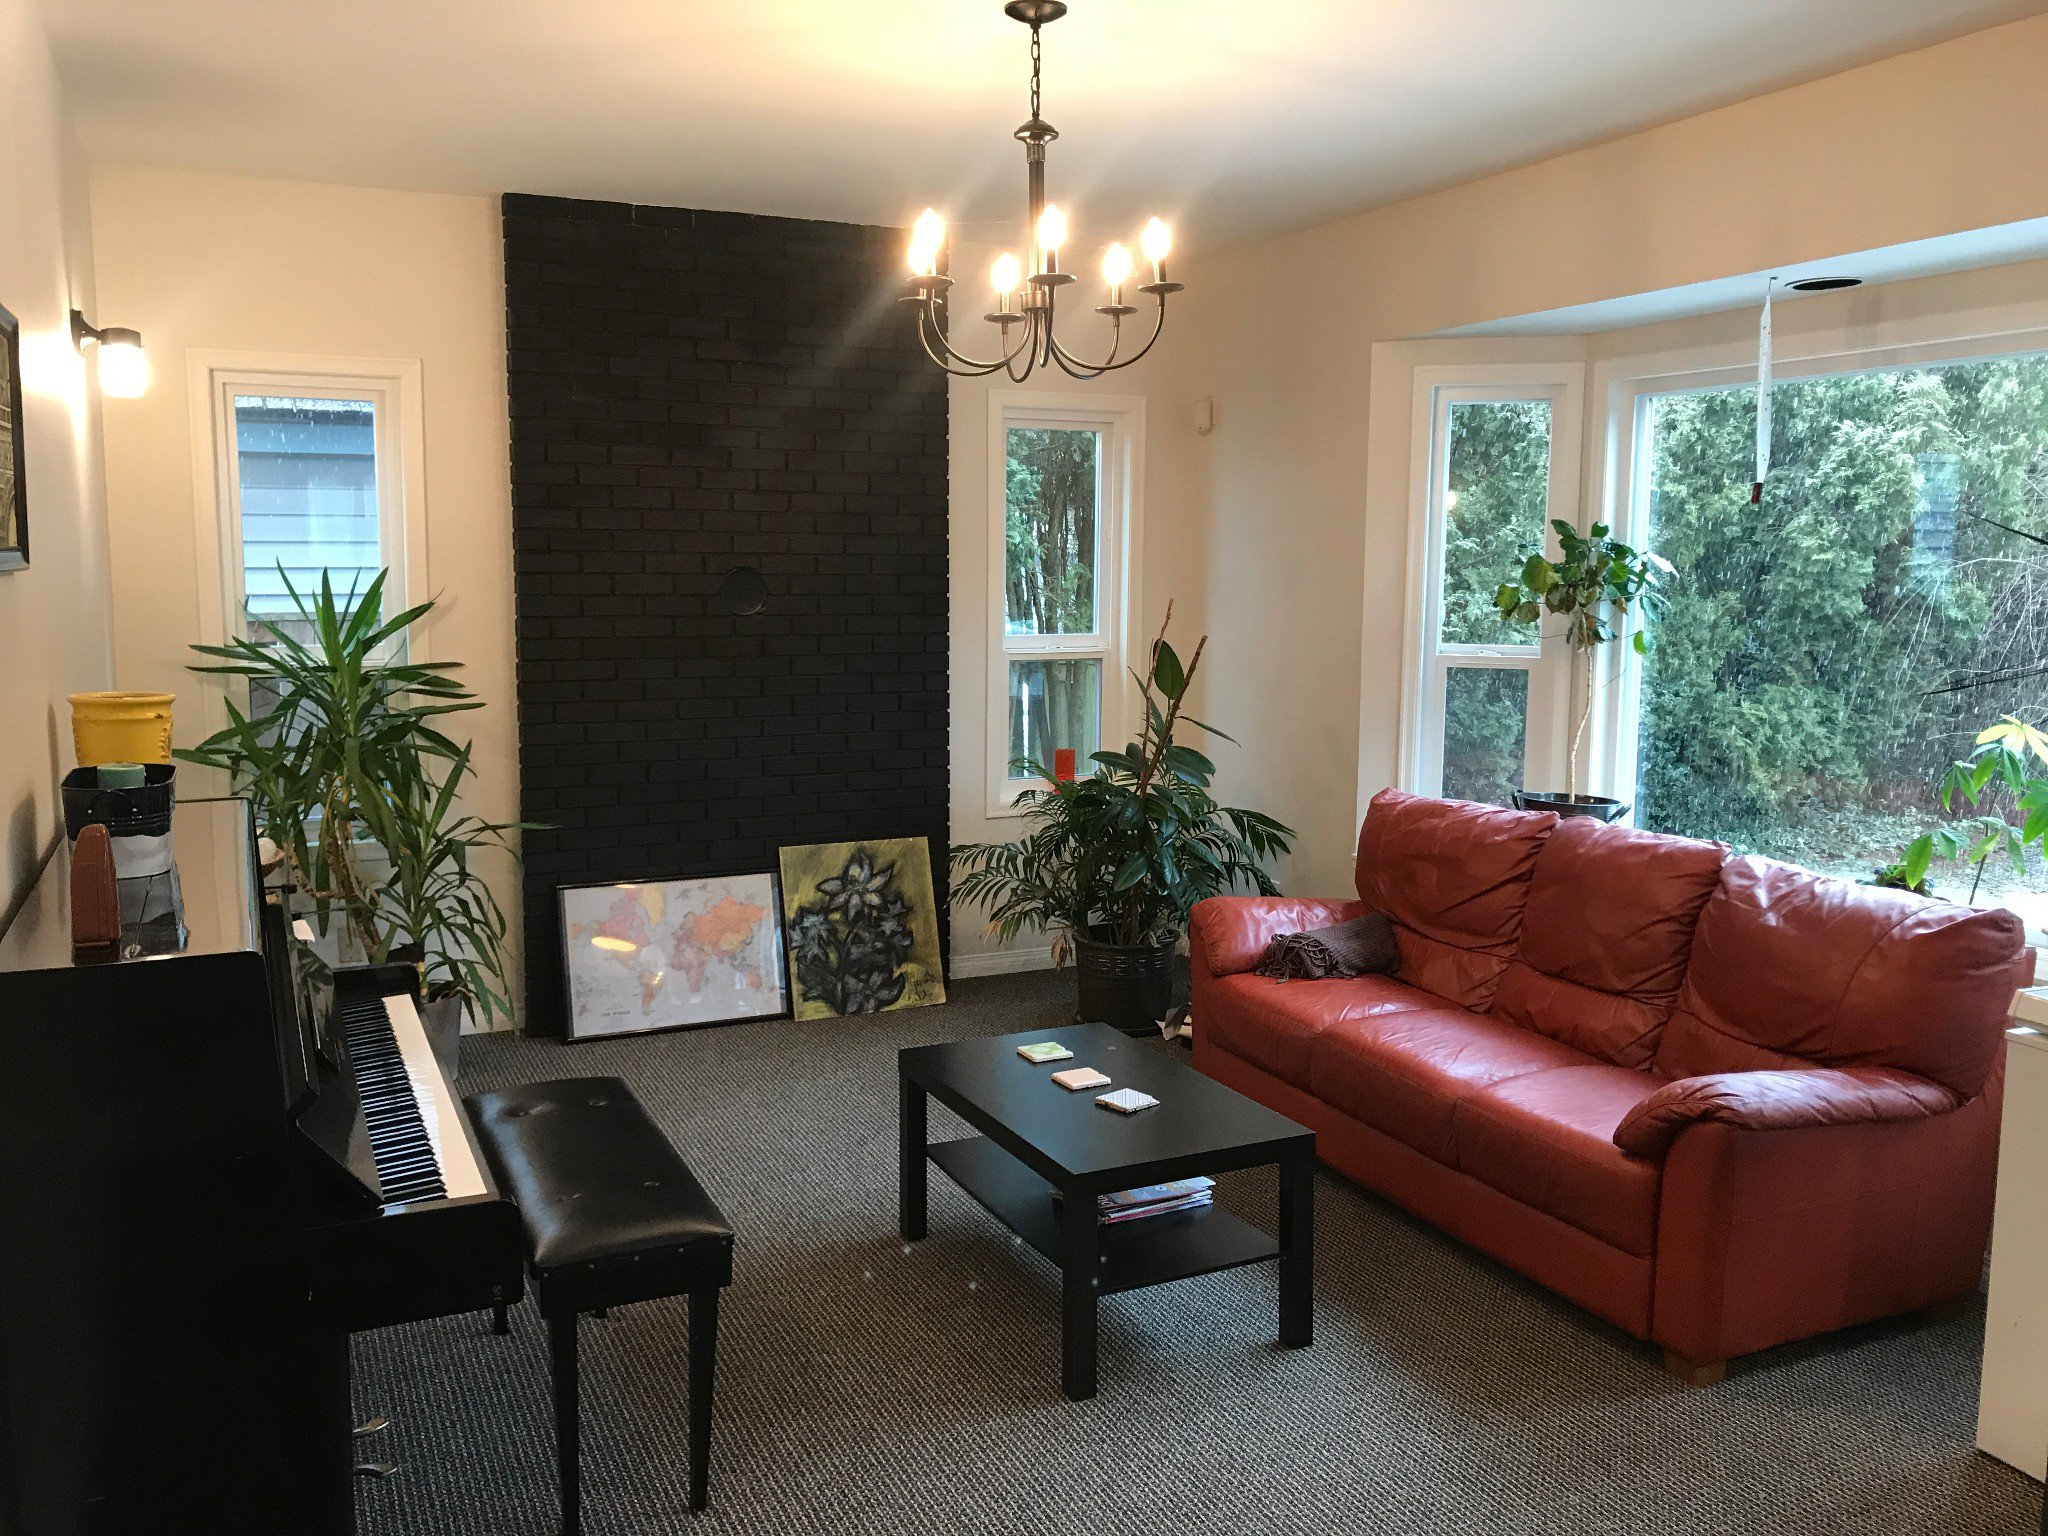 Photo 8: Photos: 32905 Alta Ave. in Abbotsford: Central Abbotsford House for rent